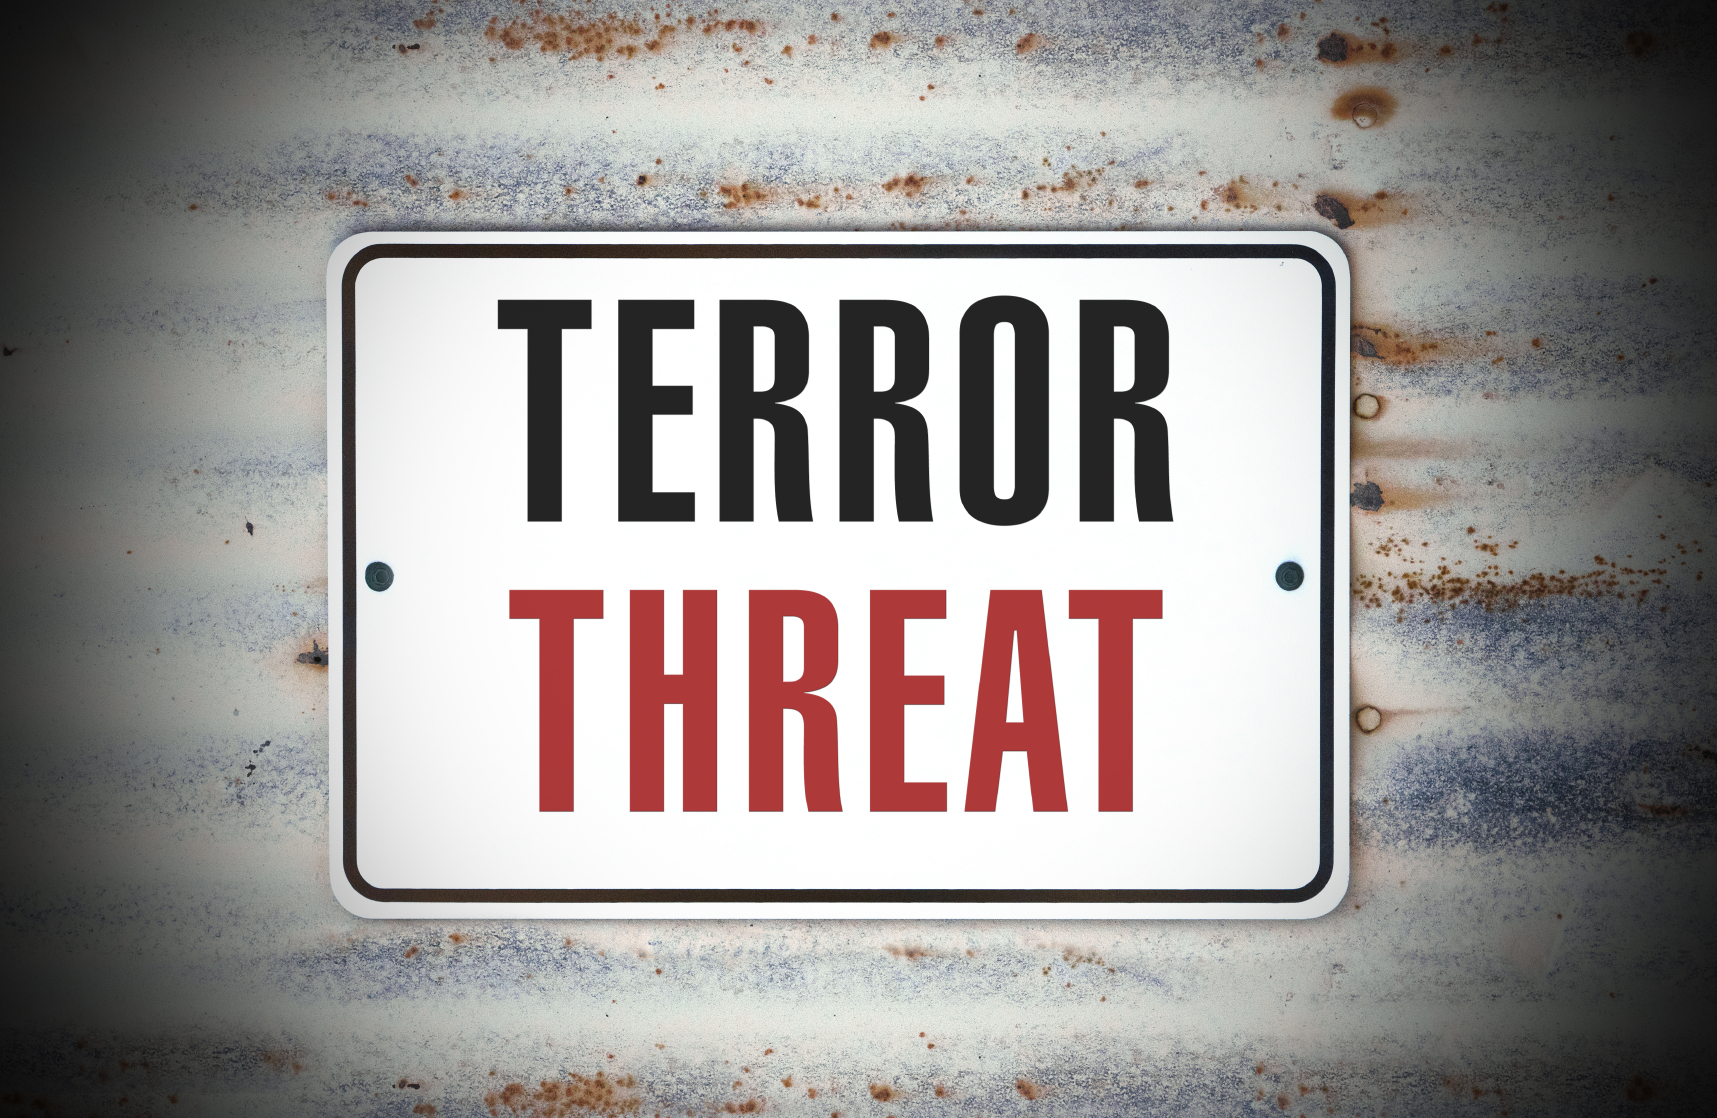 Part IV. What is the Threat to the United States Today?